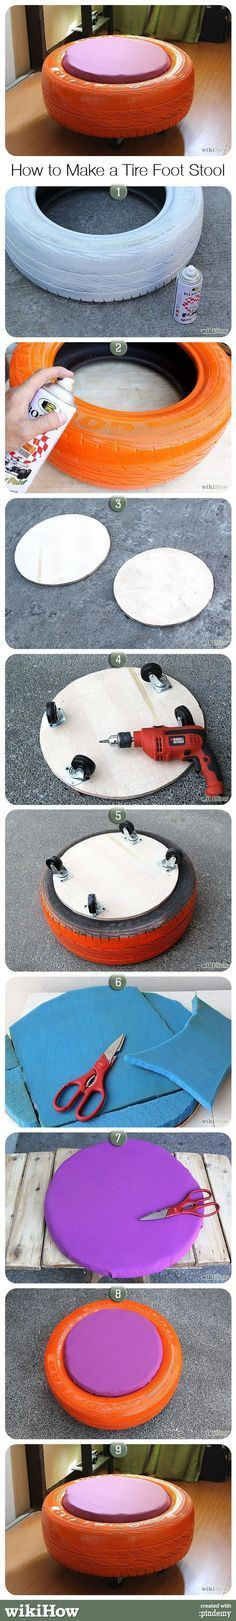 DIY Foot Stool | How To Make A Tire Foot Stool | East DIY Ideas For Your Man Cave By DIY Ready. http://diyready.com/23-more-awesome-man-cave-ideas/